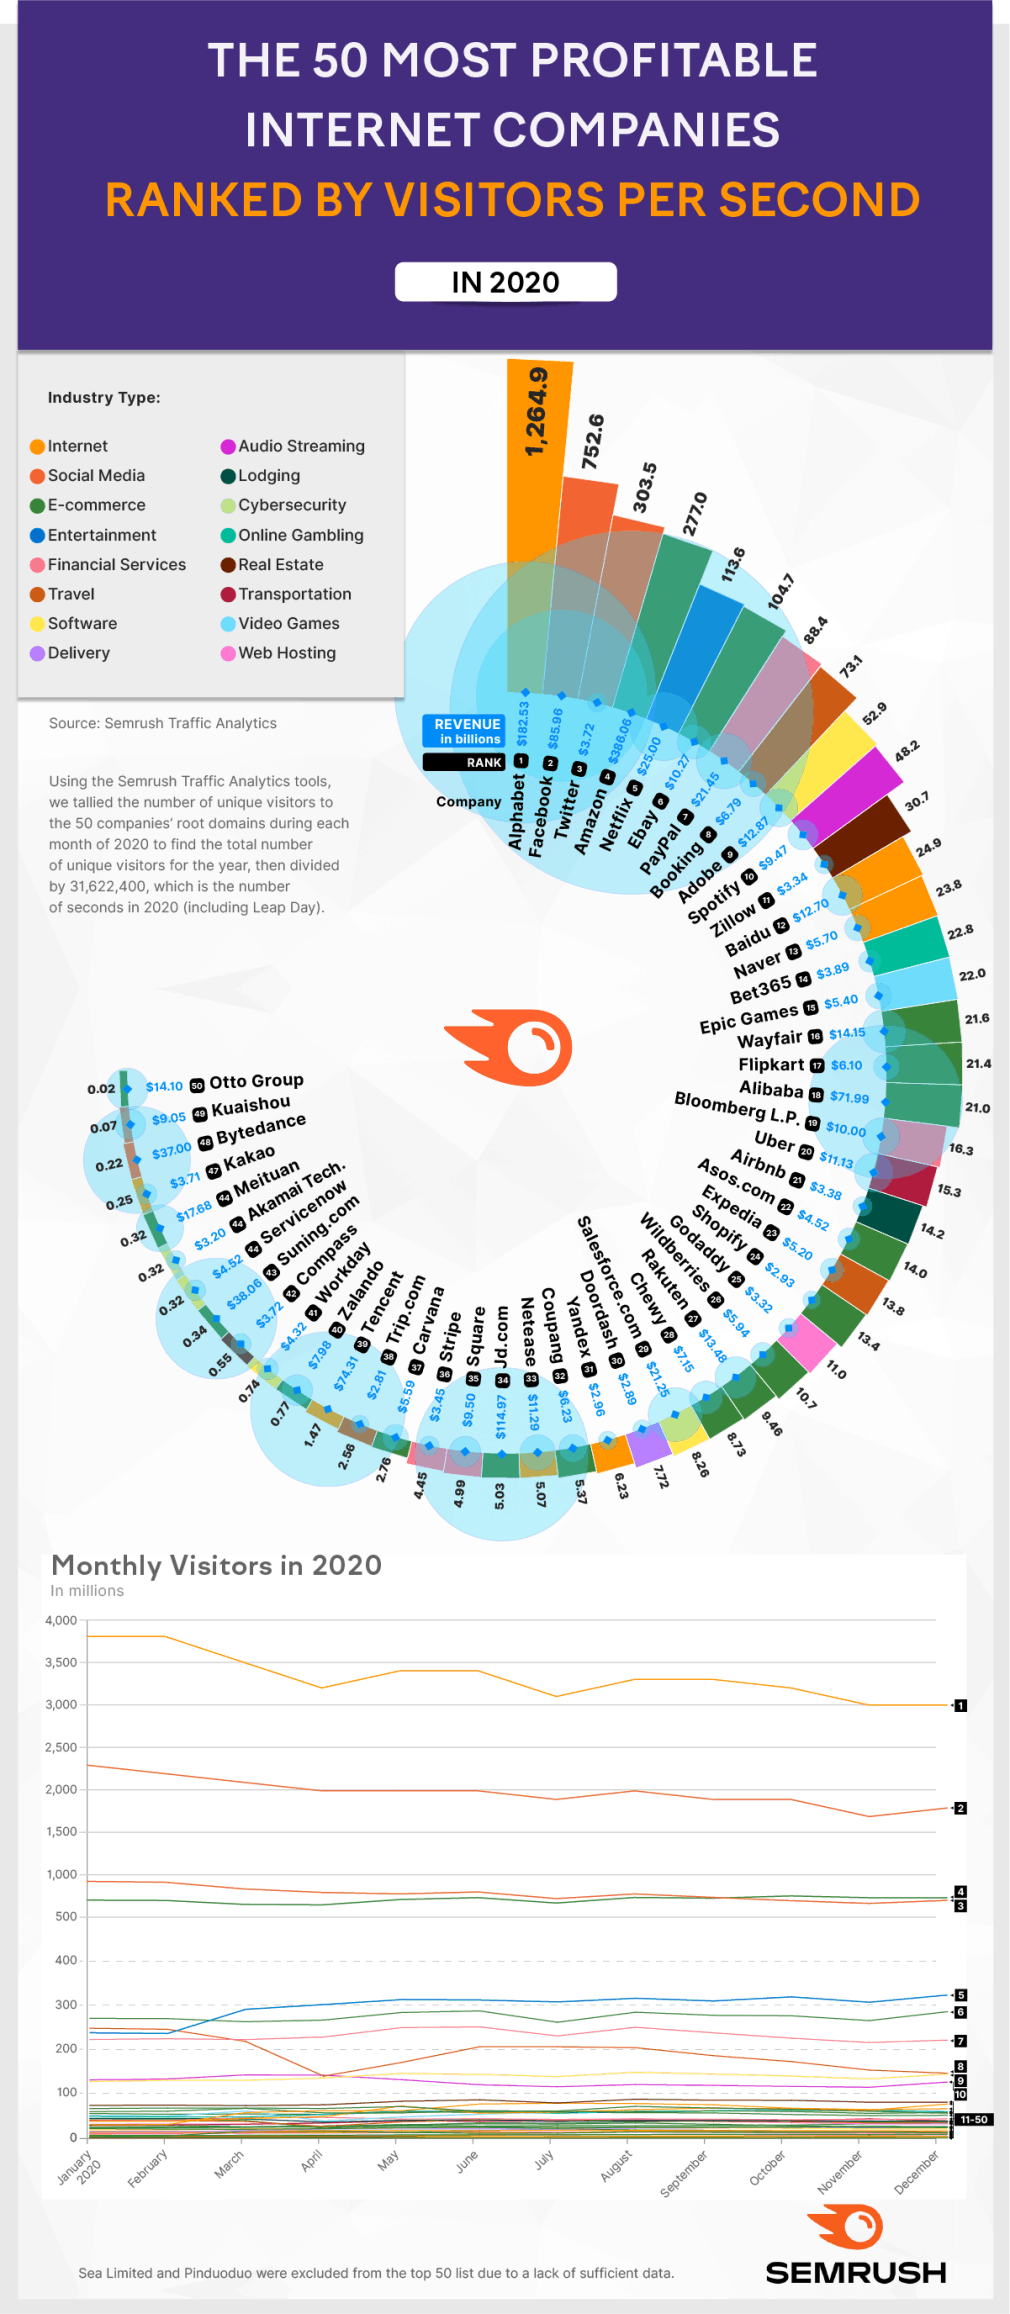 The 50 Biggest Websites in the World Ranked by Visitors per Second in 2020